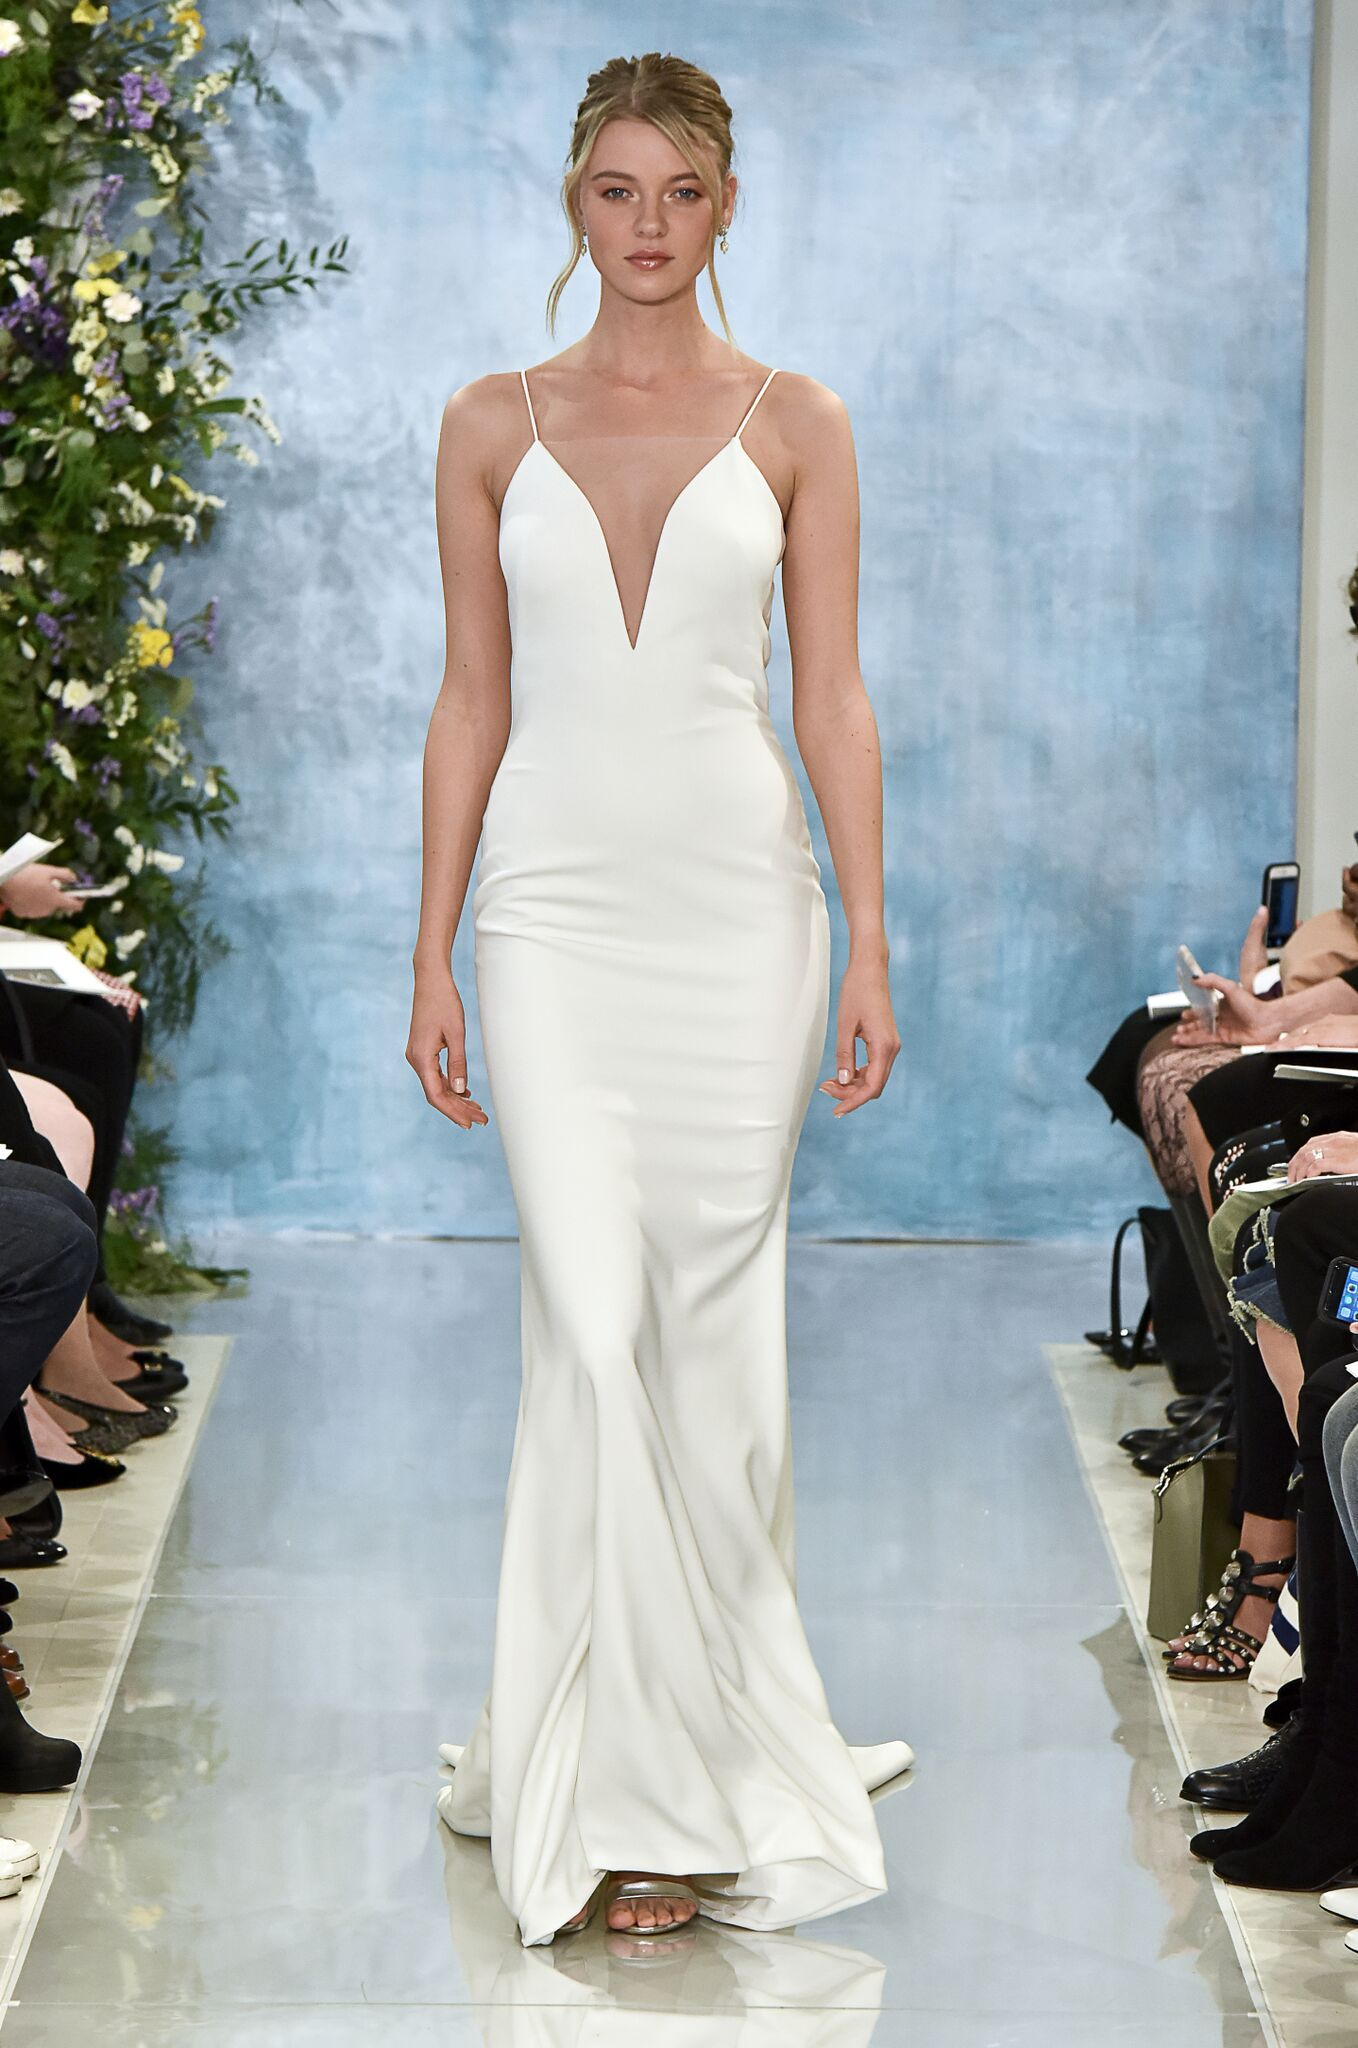 16 - Bruna Front_preview | Theia Bridal Fall 2018 | Pinterest ...